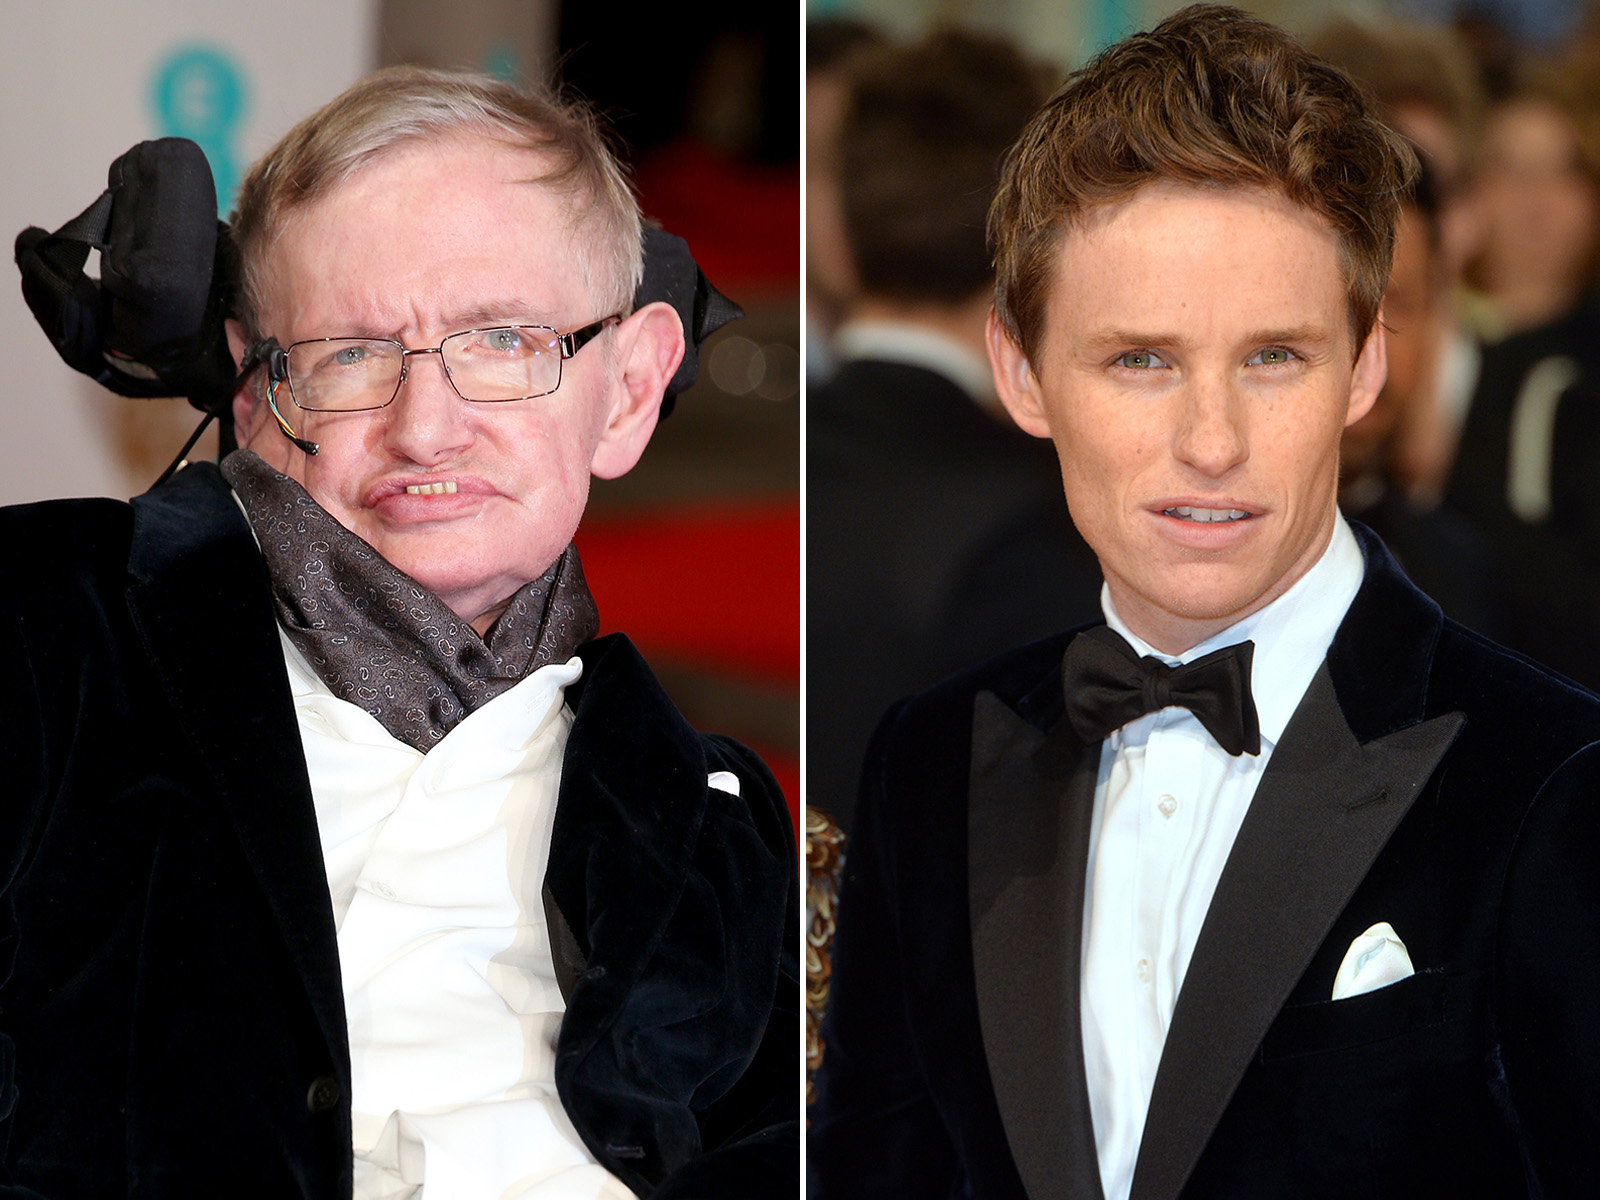 Stephen hawking eddie redmayne wedding pictures